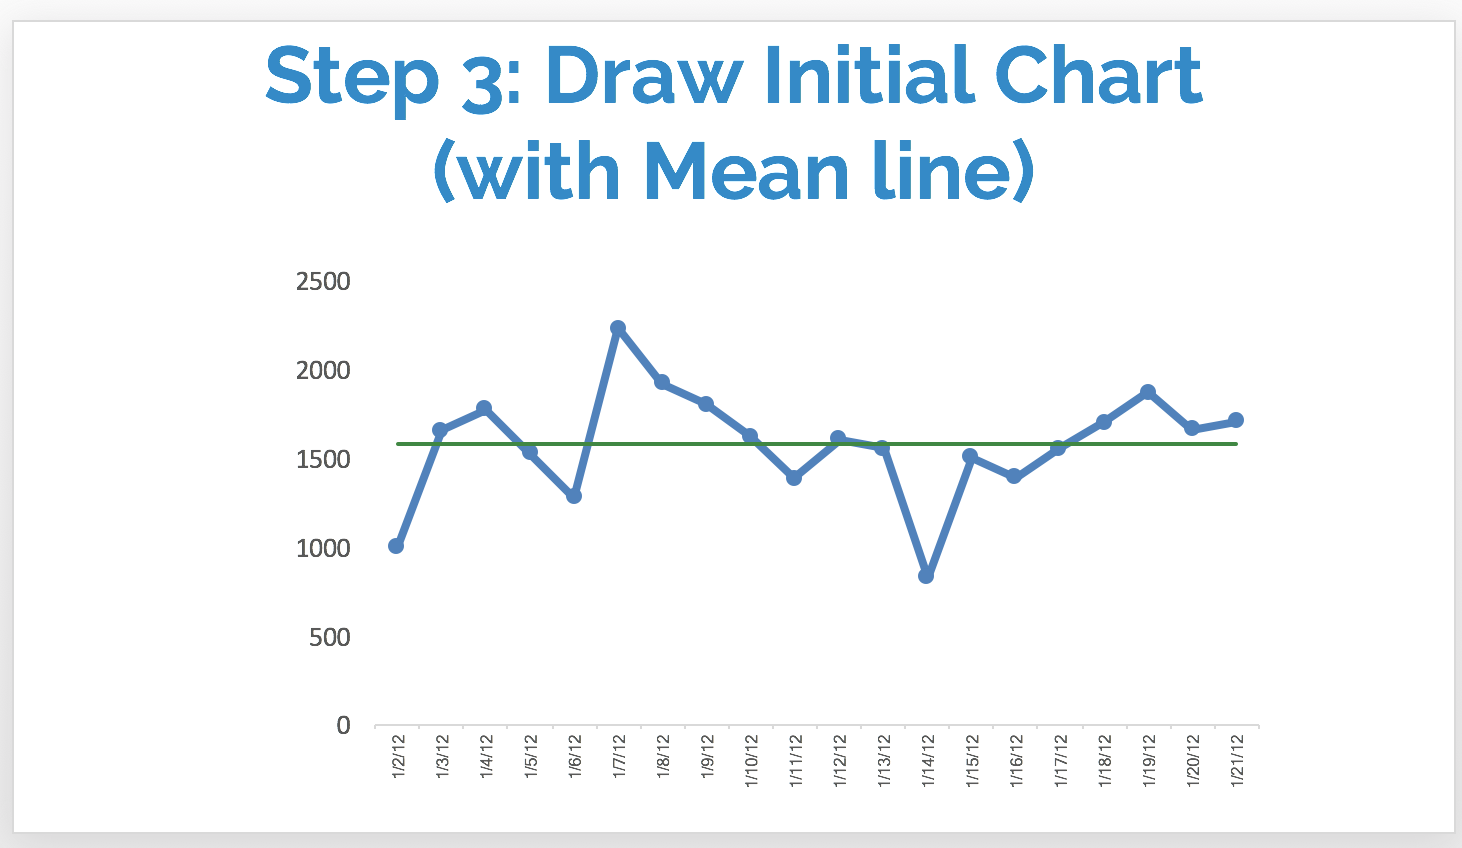 step 3 initial chart.png